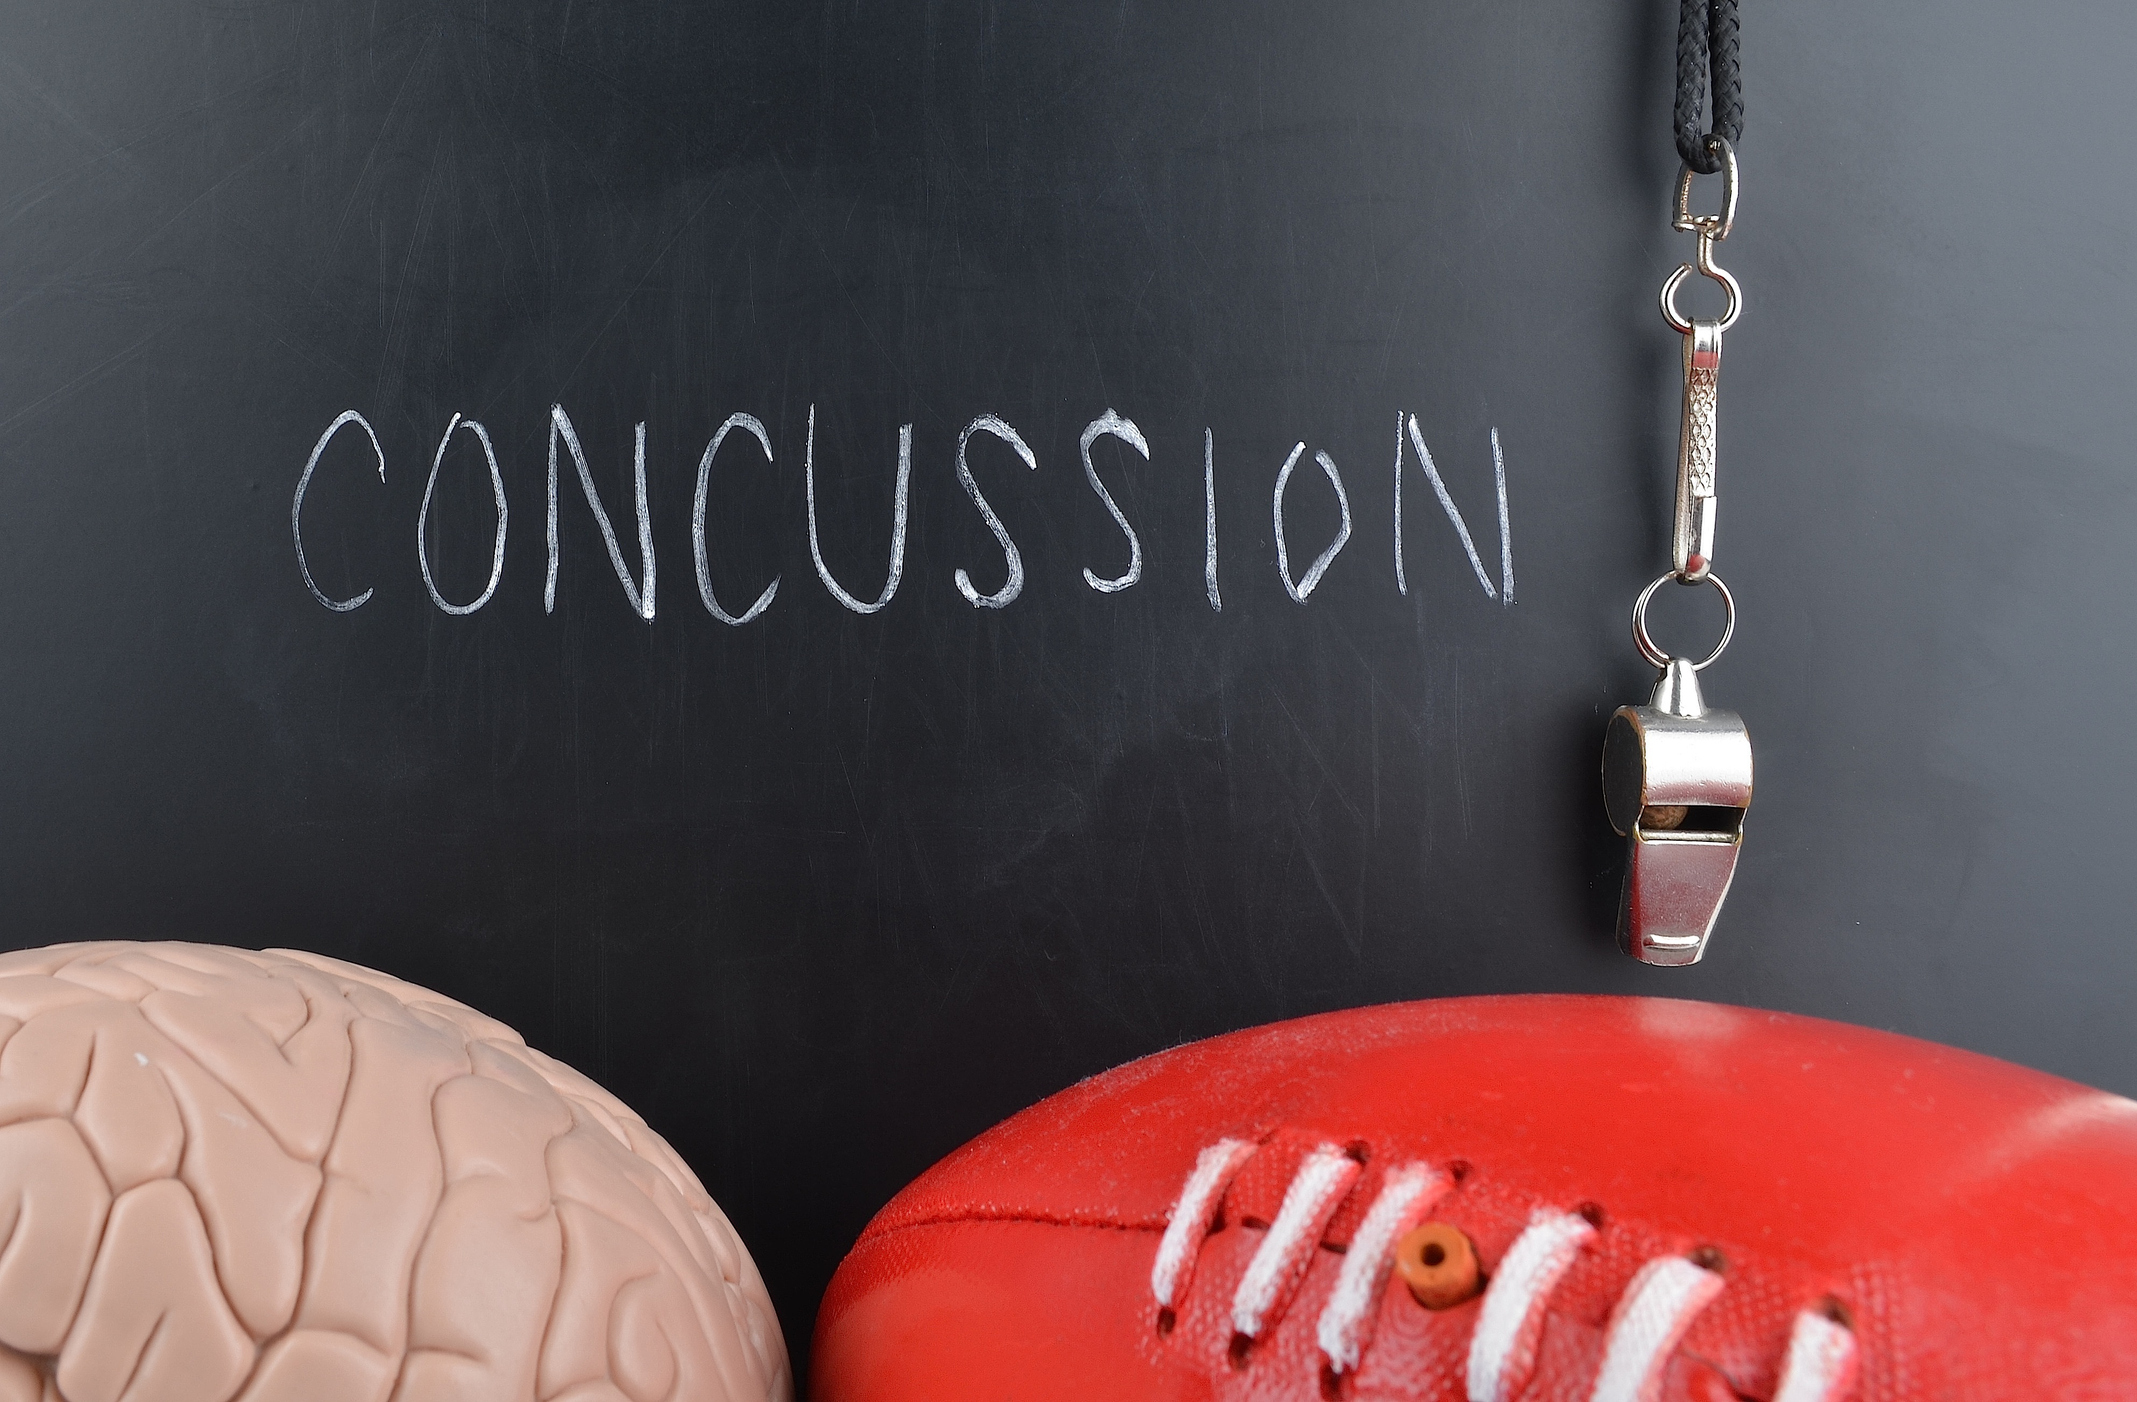 "CONCUSSIONS - WHAT IS A CONCUSSION? A concussion is a form of brain injury resulting from a direct or indirect blow to the head, face or jaw causing an alteration of brain function.*Concussion Management & Rehabilitation: Trained Provider of the Shift Concussion Management Program, Dante Biscaro MSc PT, BHK.*Comprehensive Concussion Assessments and Follow Up Treatment Programs.*Qualified to Administer the ImPACT Test (Immediate Post-Concussion Assessment and Cognitive Testing).*Pre-Participation Concussion Baseline Testing For Athletes- Baseline Testing is a vital component to the proper management of concussive injuries. By measuring an athlete's ""normal"" level of functioning through baseline testing, Healthcare providers are better able to gauge the level of impairment or injury that may exist post-injury by performing comparative testing. Baseline Testing is used to track the athlete's recovery and serve as a tangible measurement for Return-to-Participation timelines.Concussion Initial Assessments 75- 90 mins.Concussion Subsequent Visits 45 minsAthletic Baseline Testing 25 mins*DIRECT BILLING AVAILABLEYou can read more at Shift Concussion Management: shiftconcussion.ca"